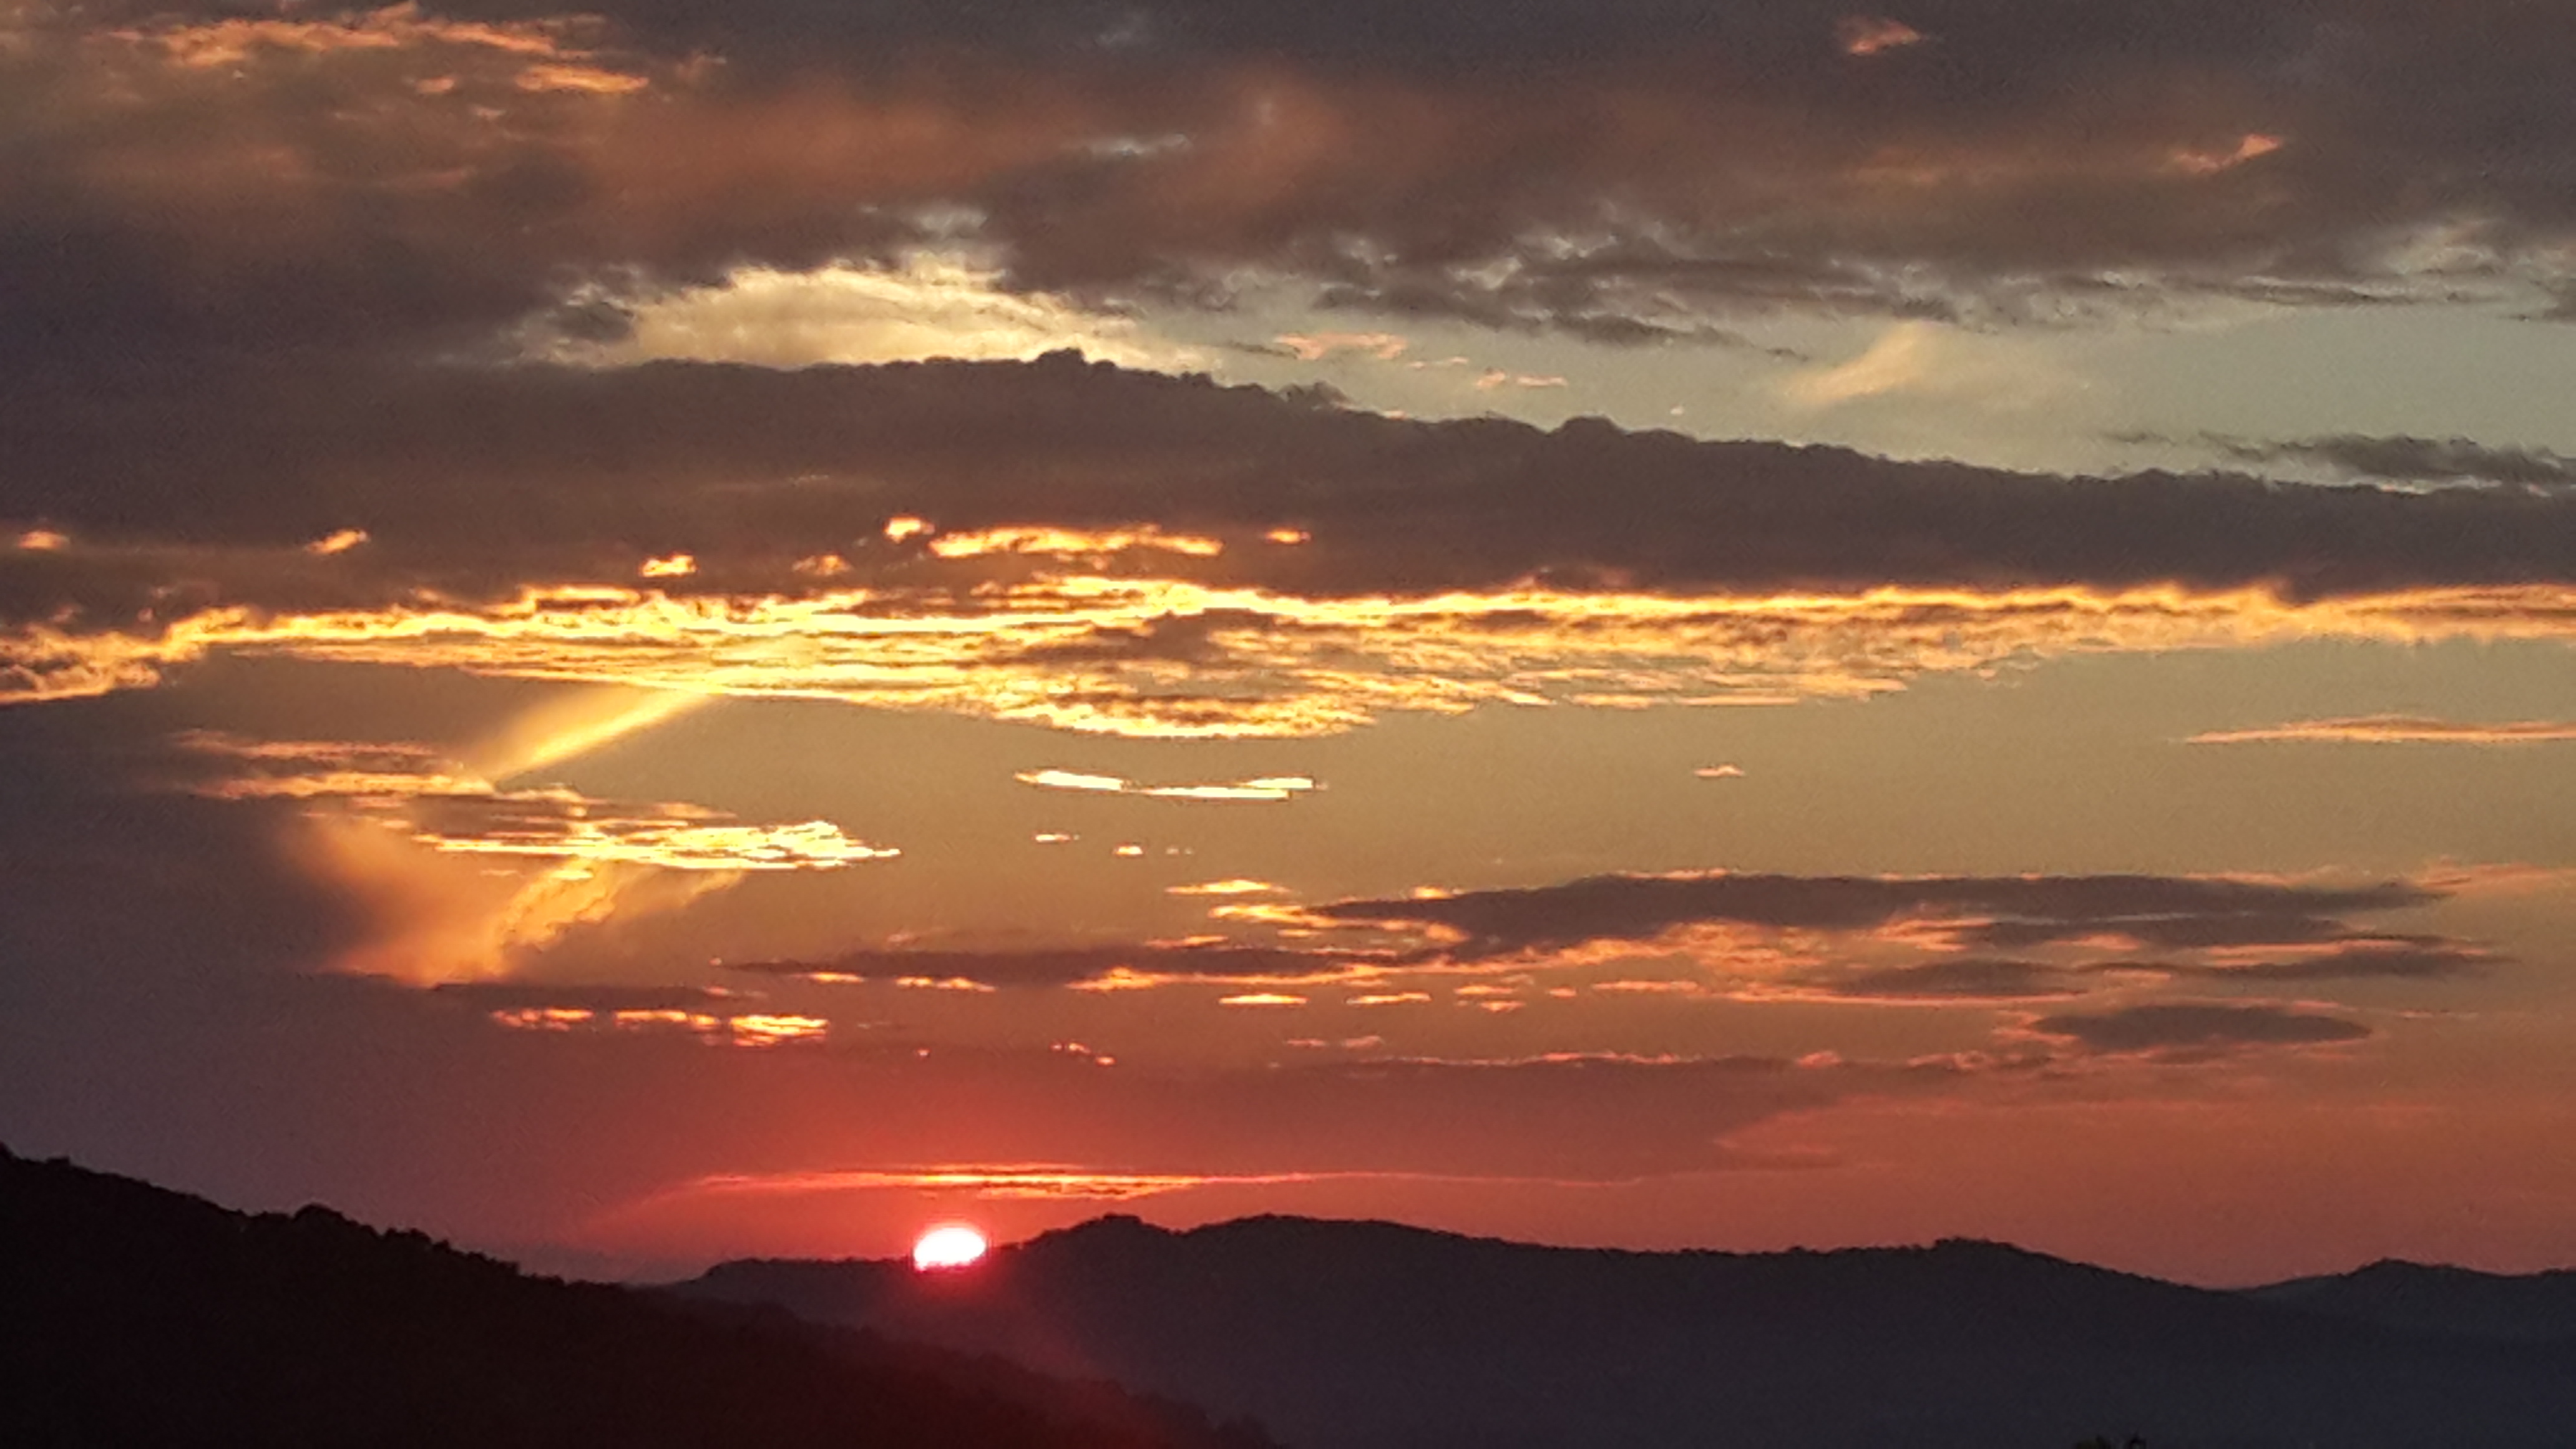 Sunset over the hills photo